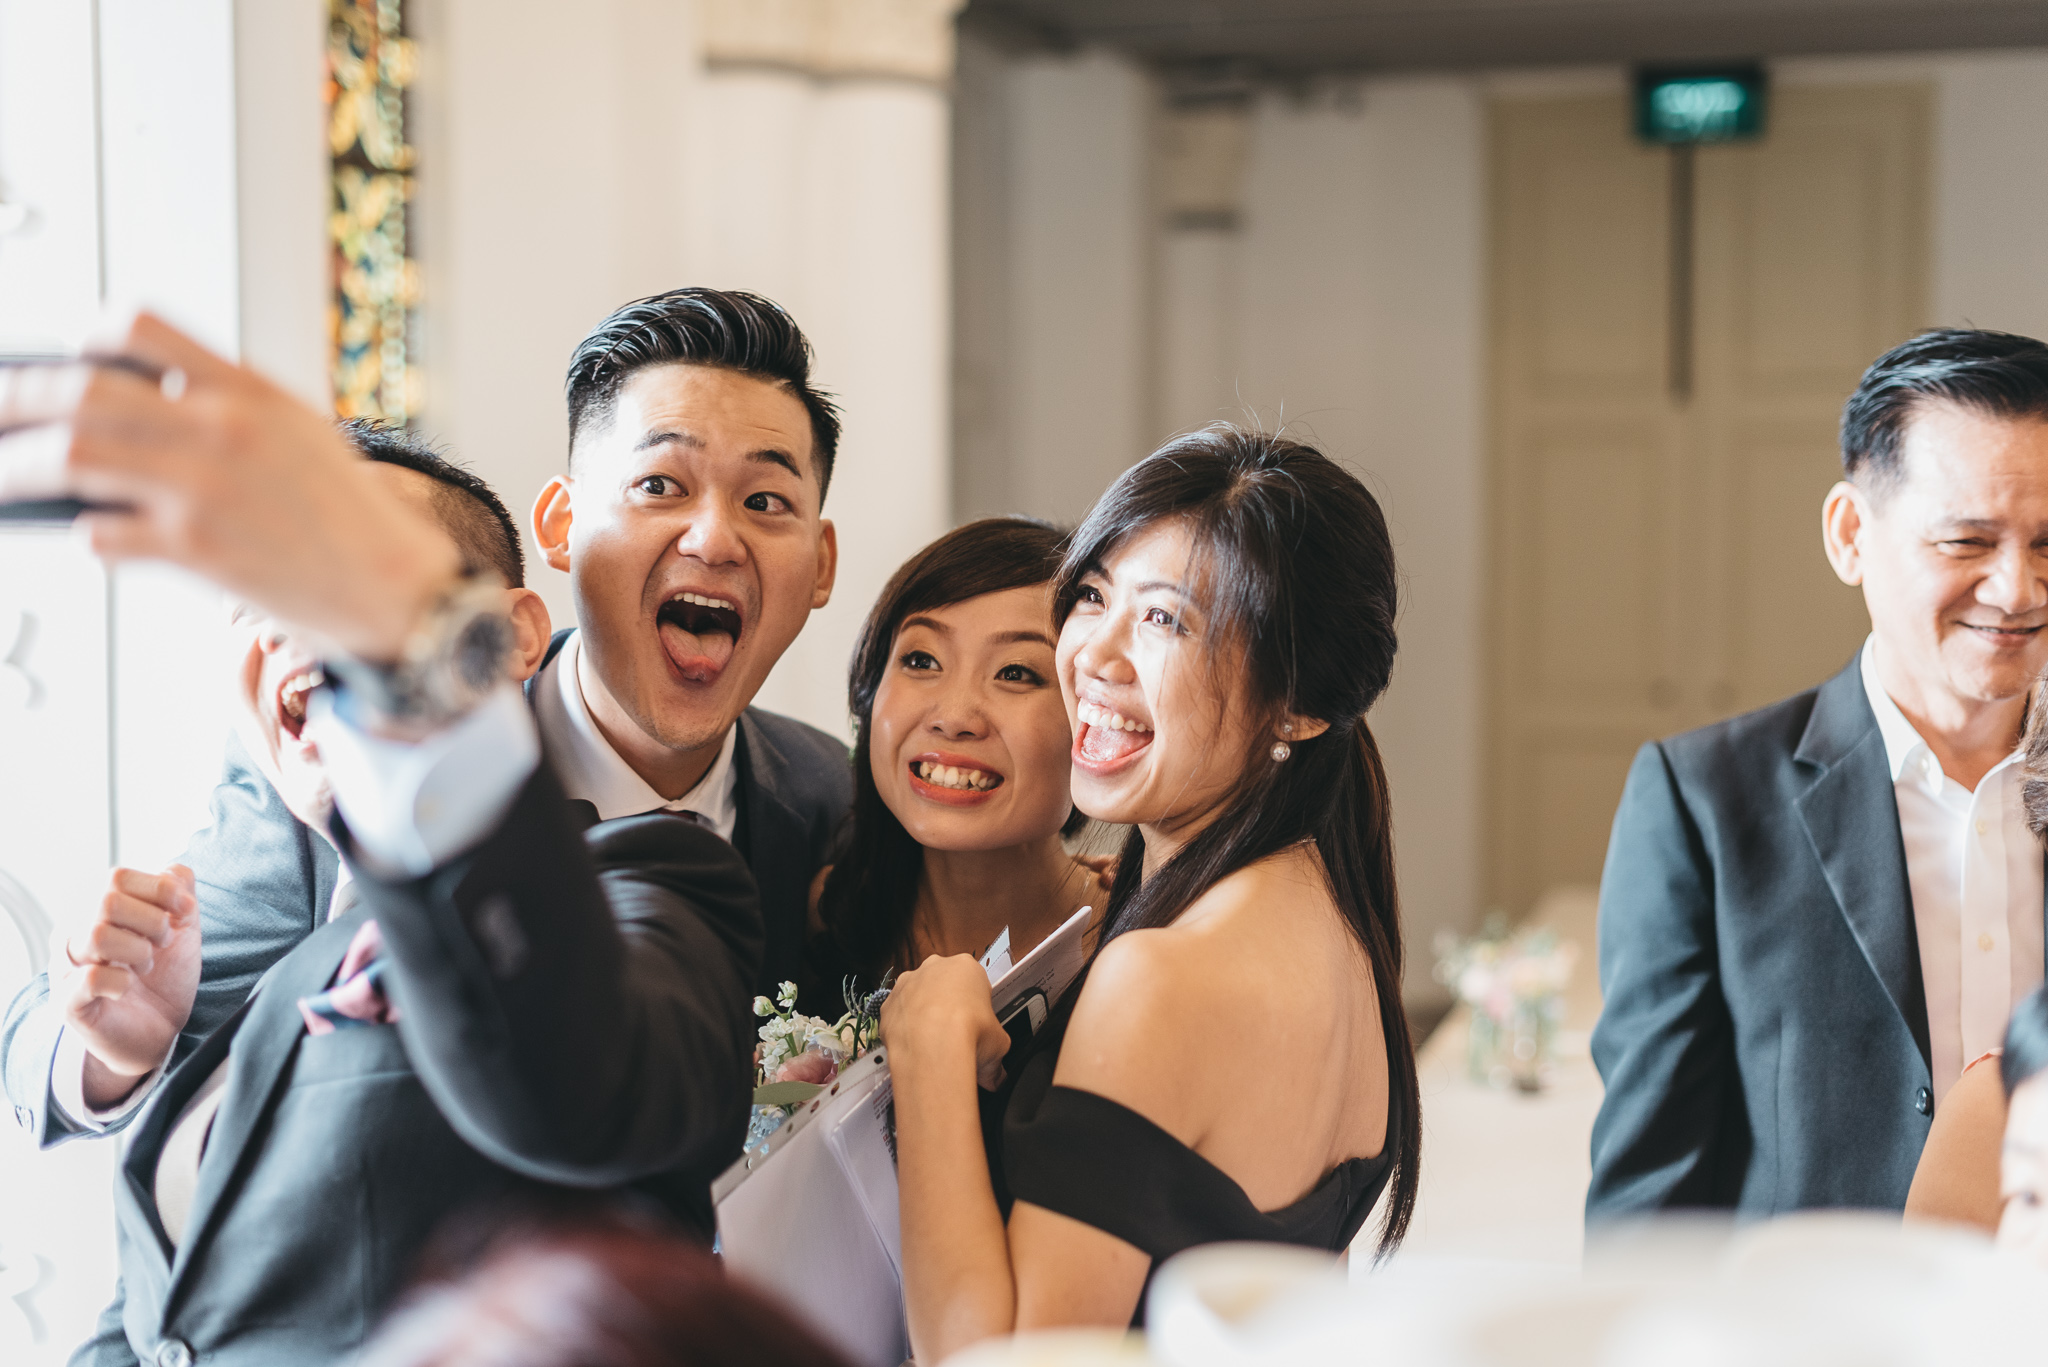 Alice & Wei Bang Wedding Day Highlights (resized for sharing) - 121.jpg